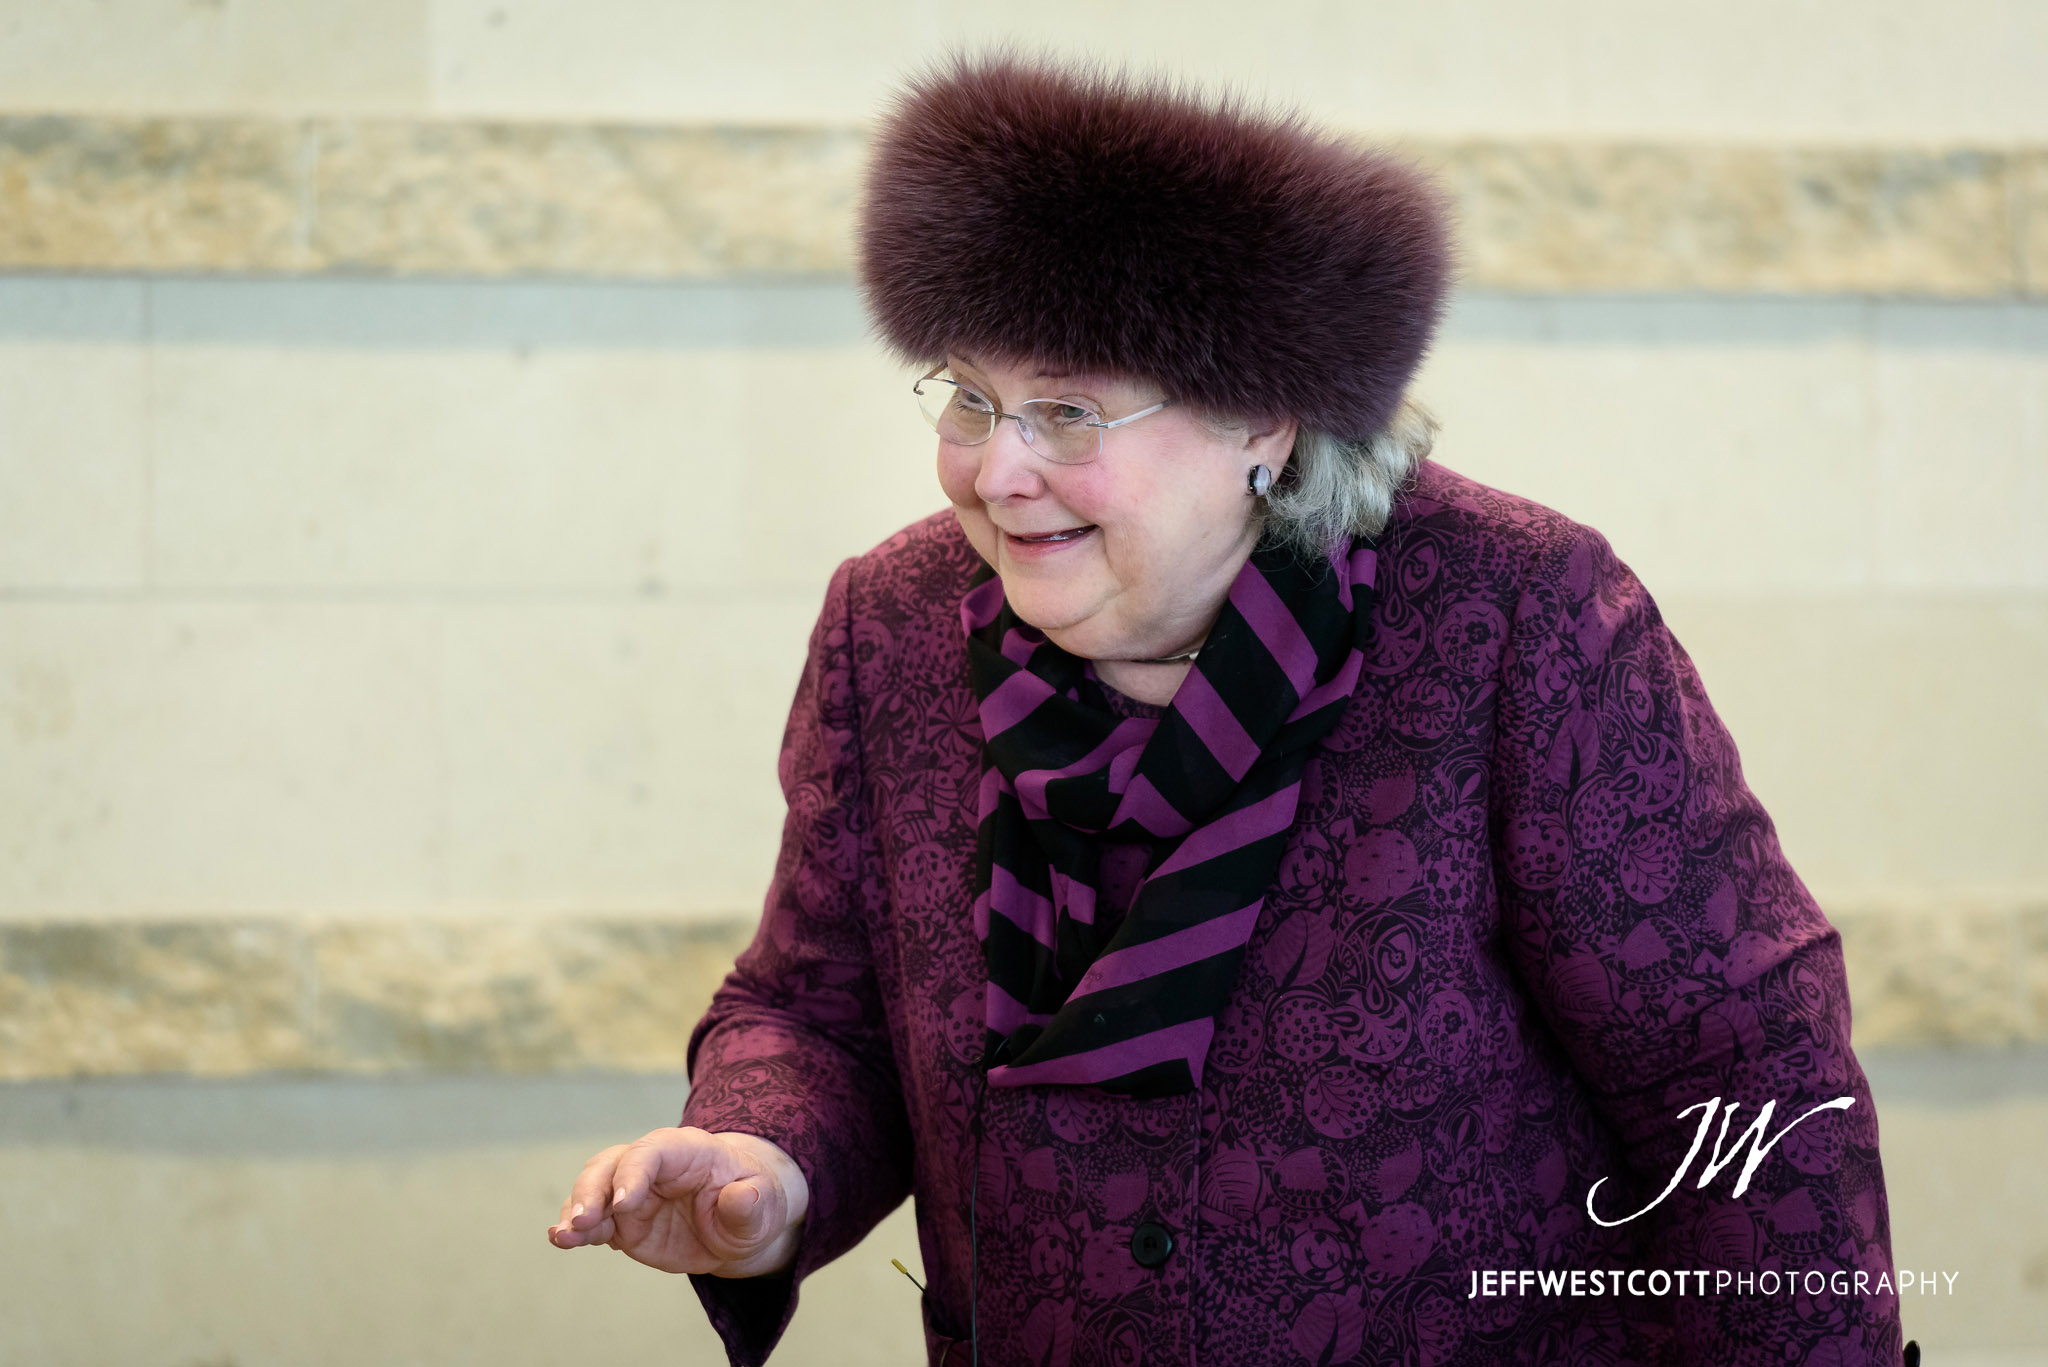 Dorothy Patterson was the speaker at this year's Pastor's Wive's Luncheon